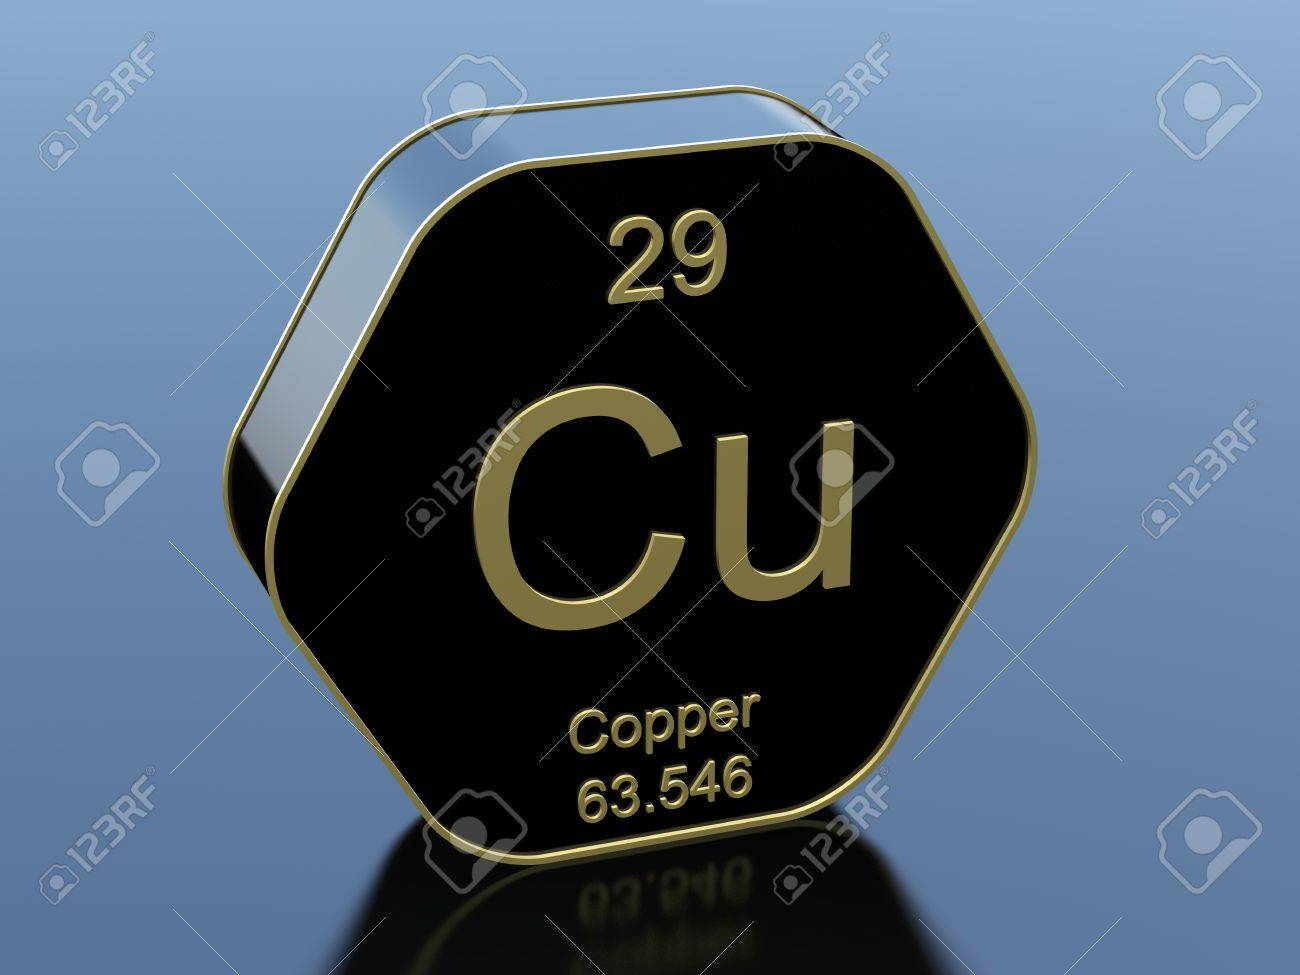 Copper element symbol on hexagonal black icon stock photo picture copper element symbol on hexagonal black icon stock photo 65586842 buycottarizona Image collections